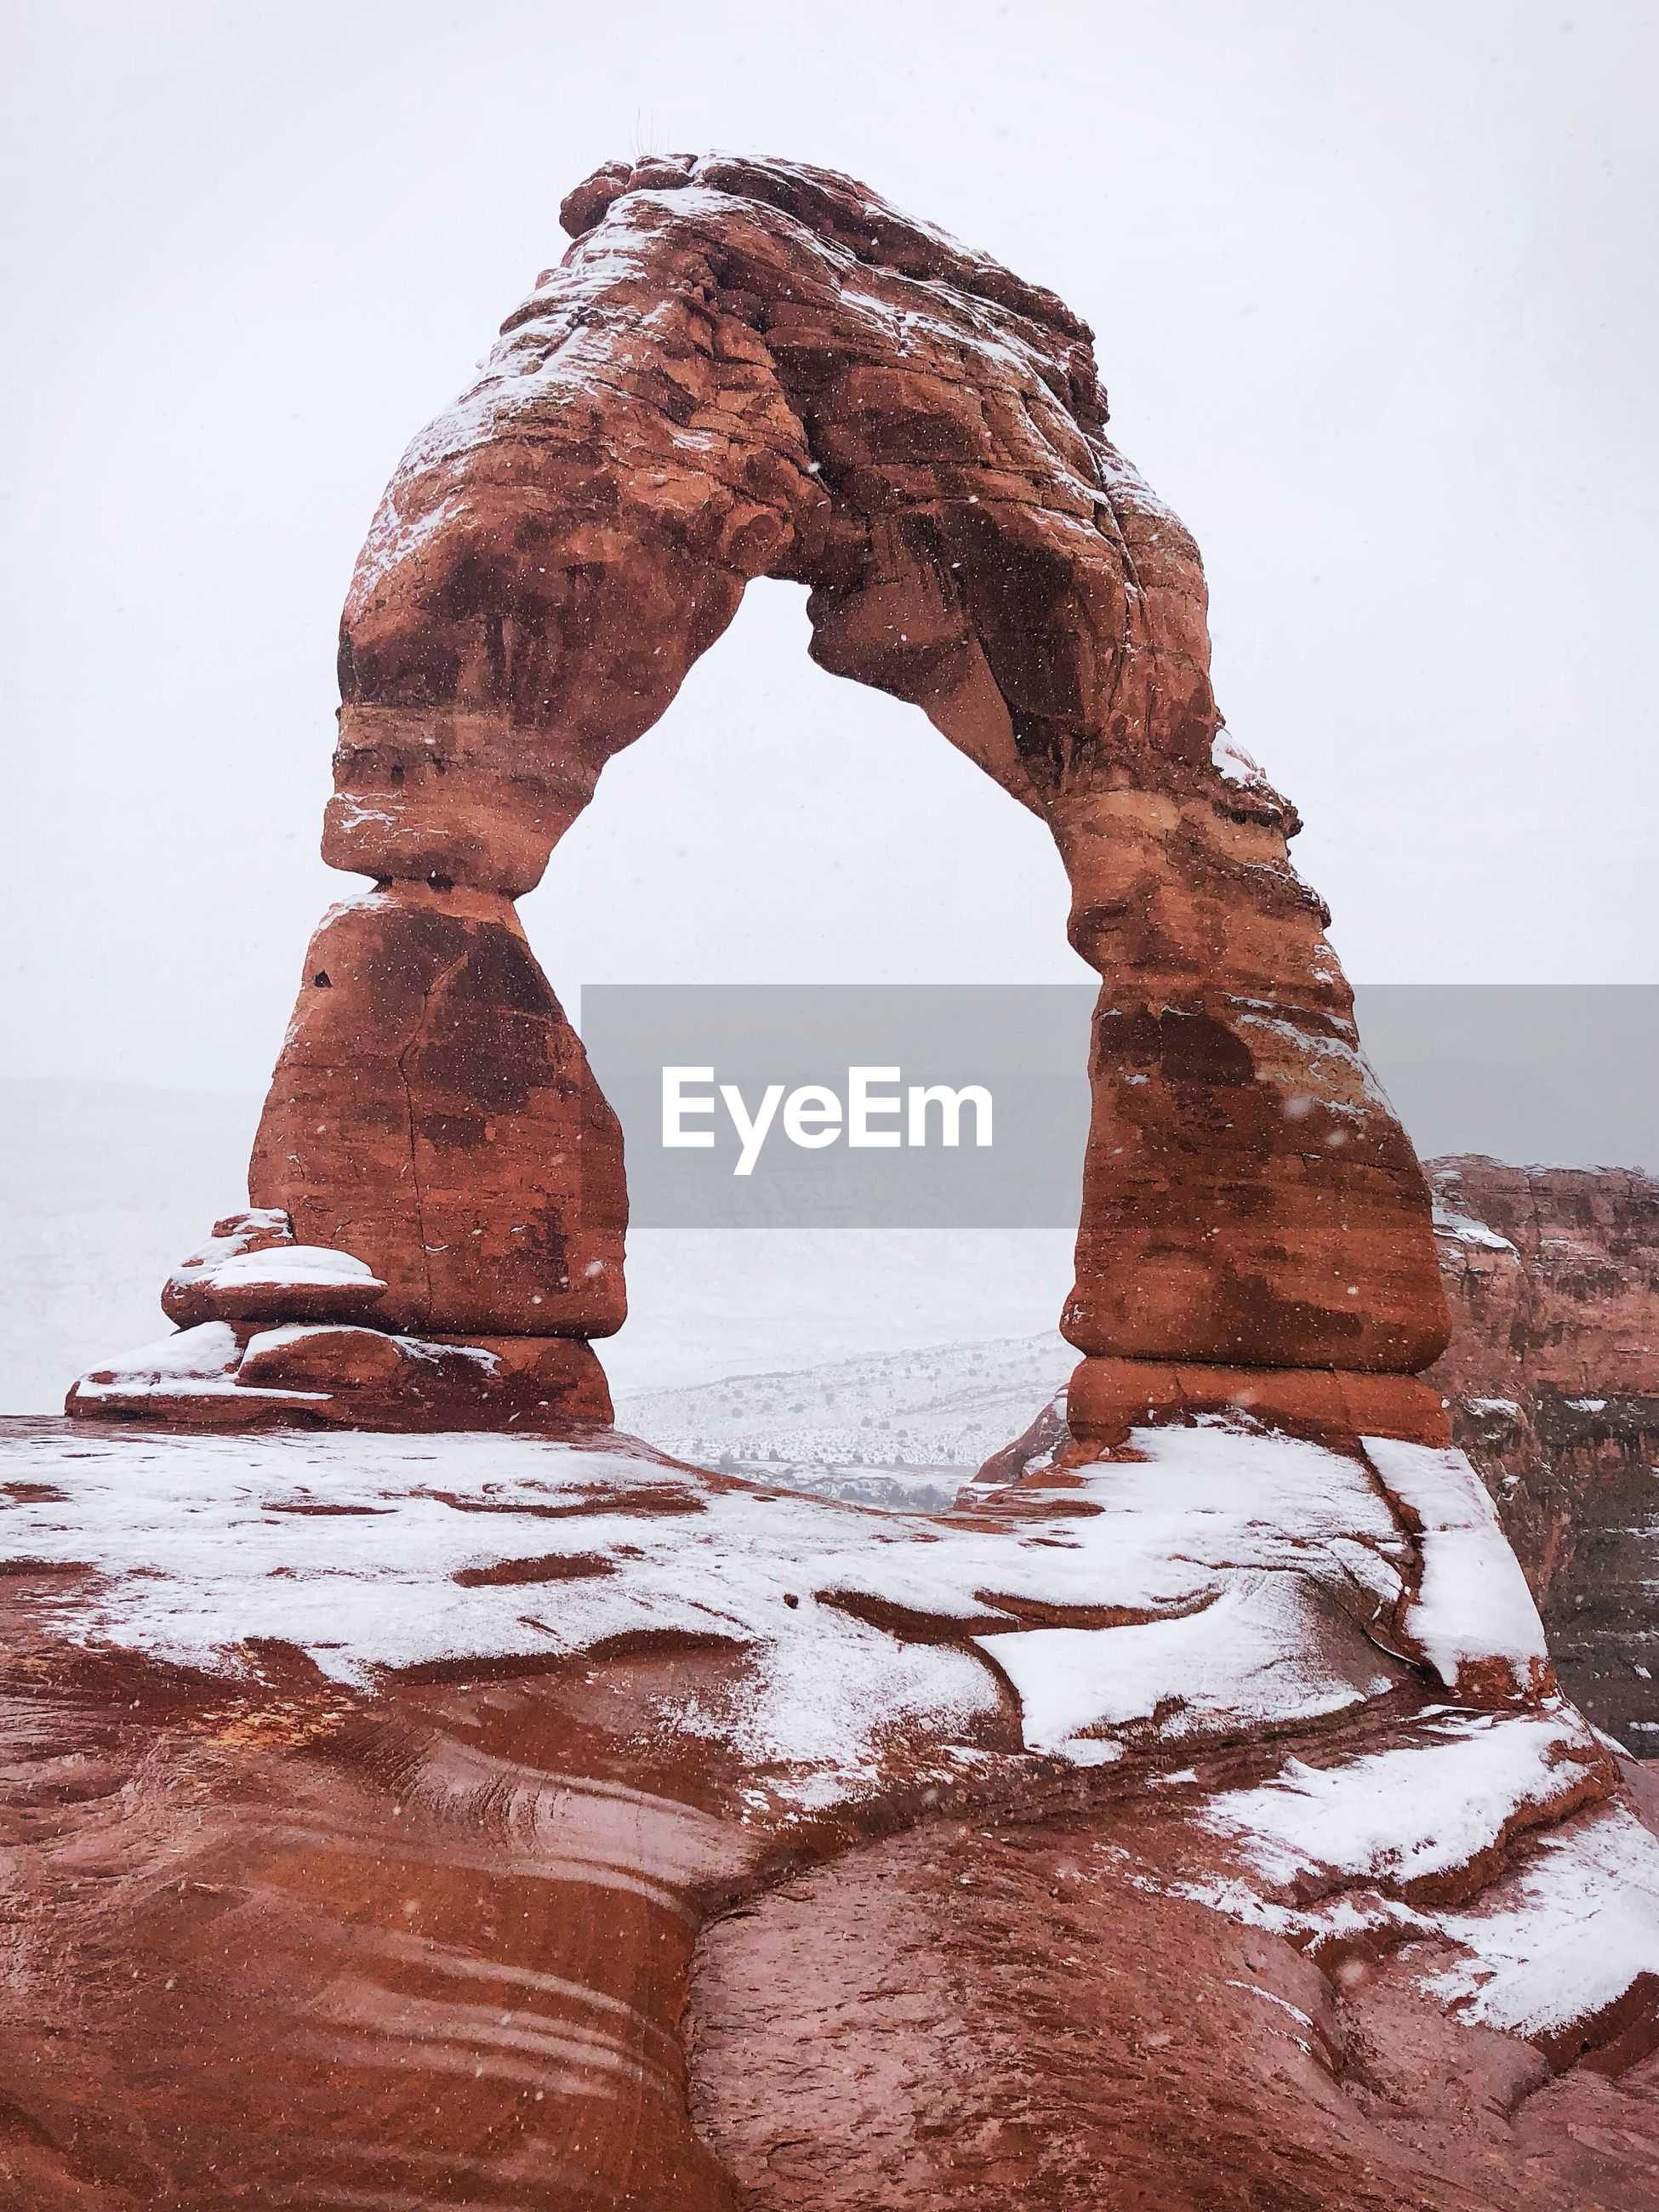 Rock formation in desert against clear sky during winter